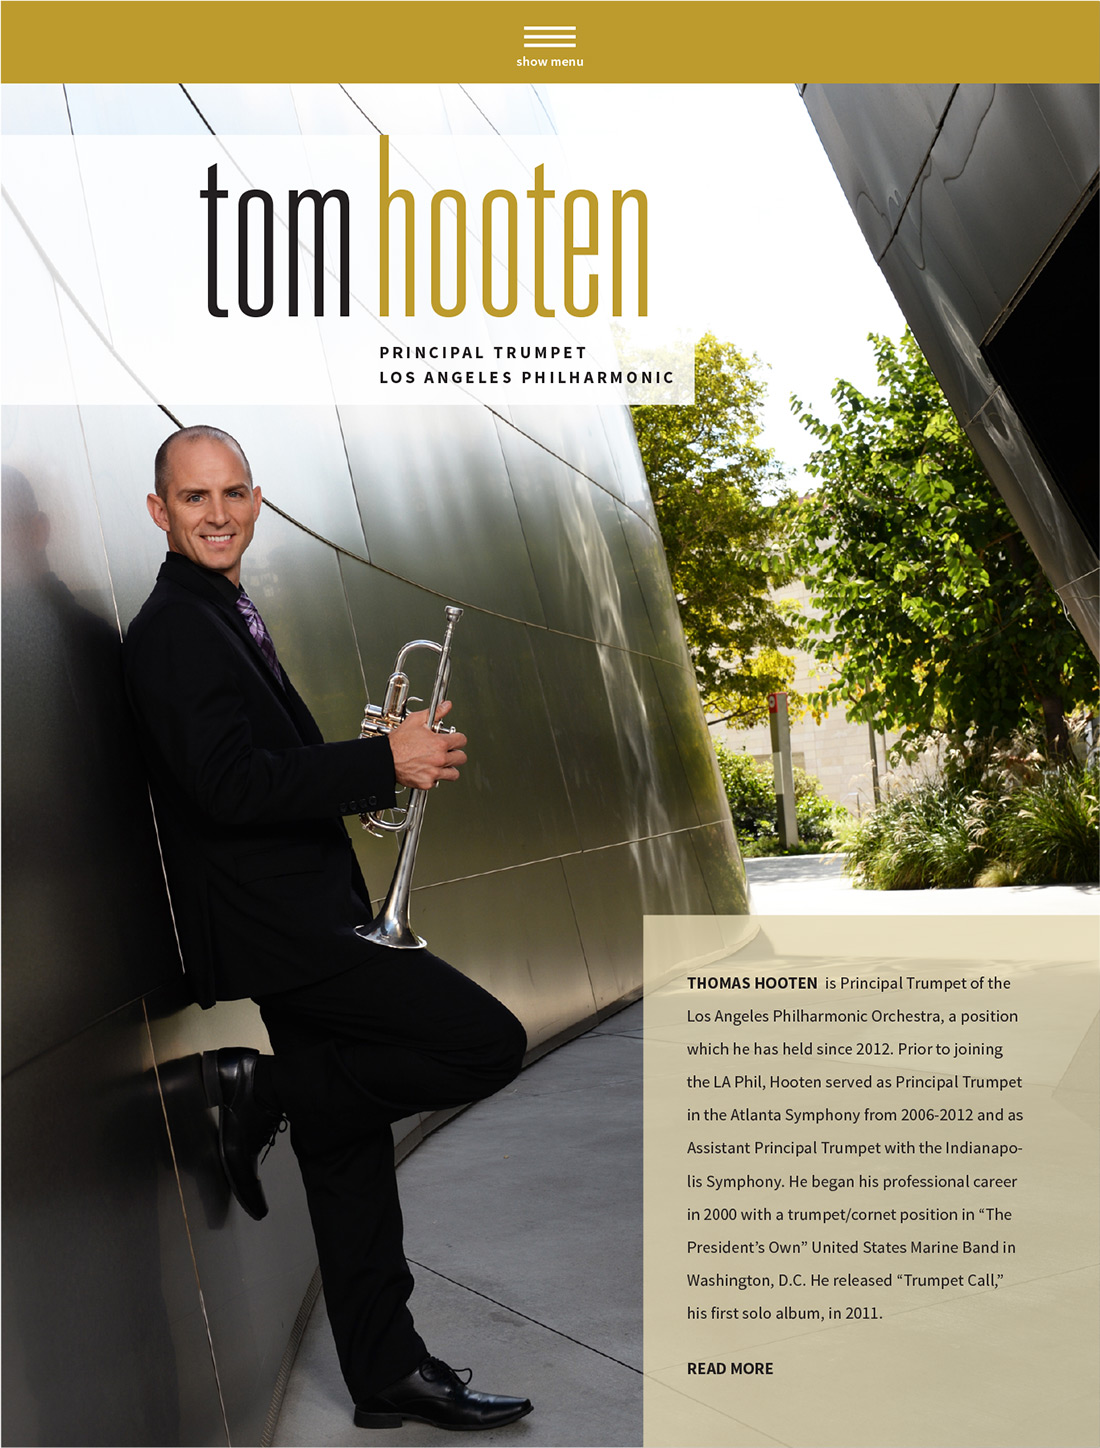 tom hooten website